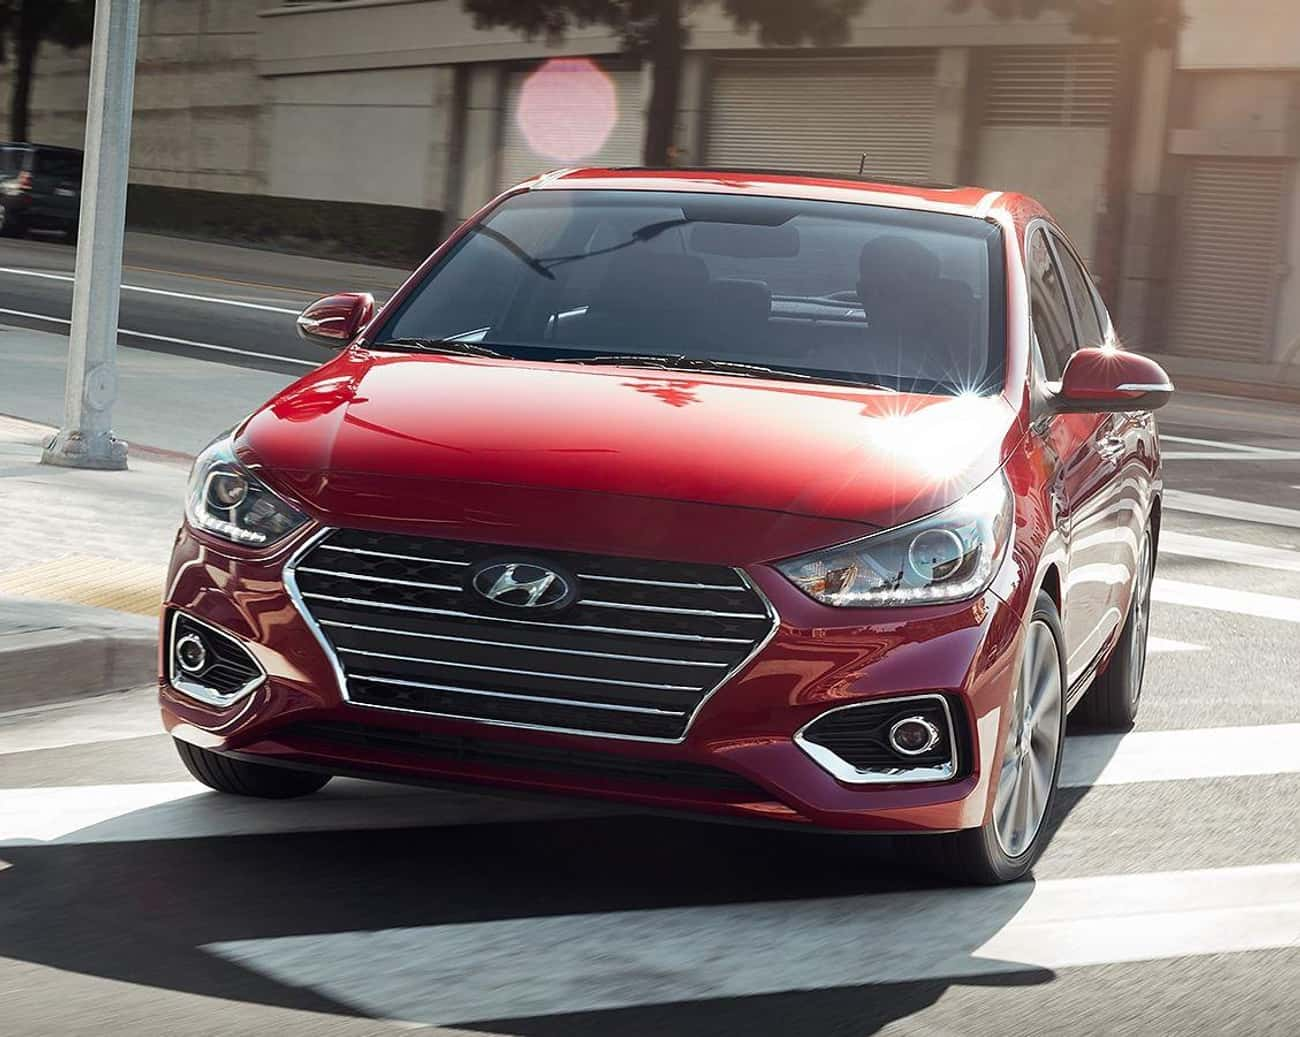 Hyundai Accent is listed (or ranked) 3 on the list The Best 2020 Cars Under $20,000